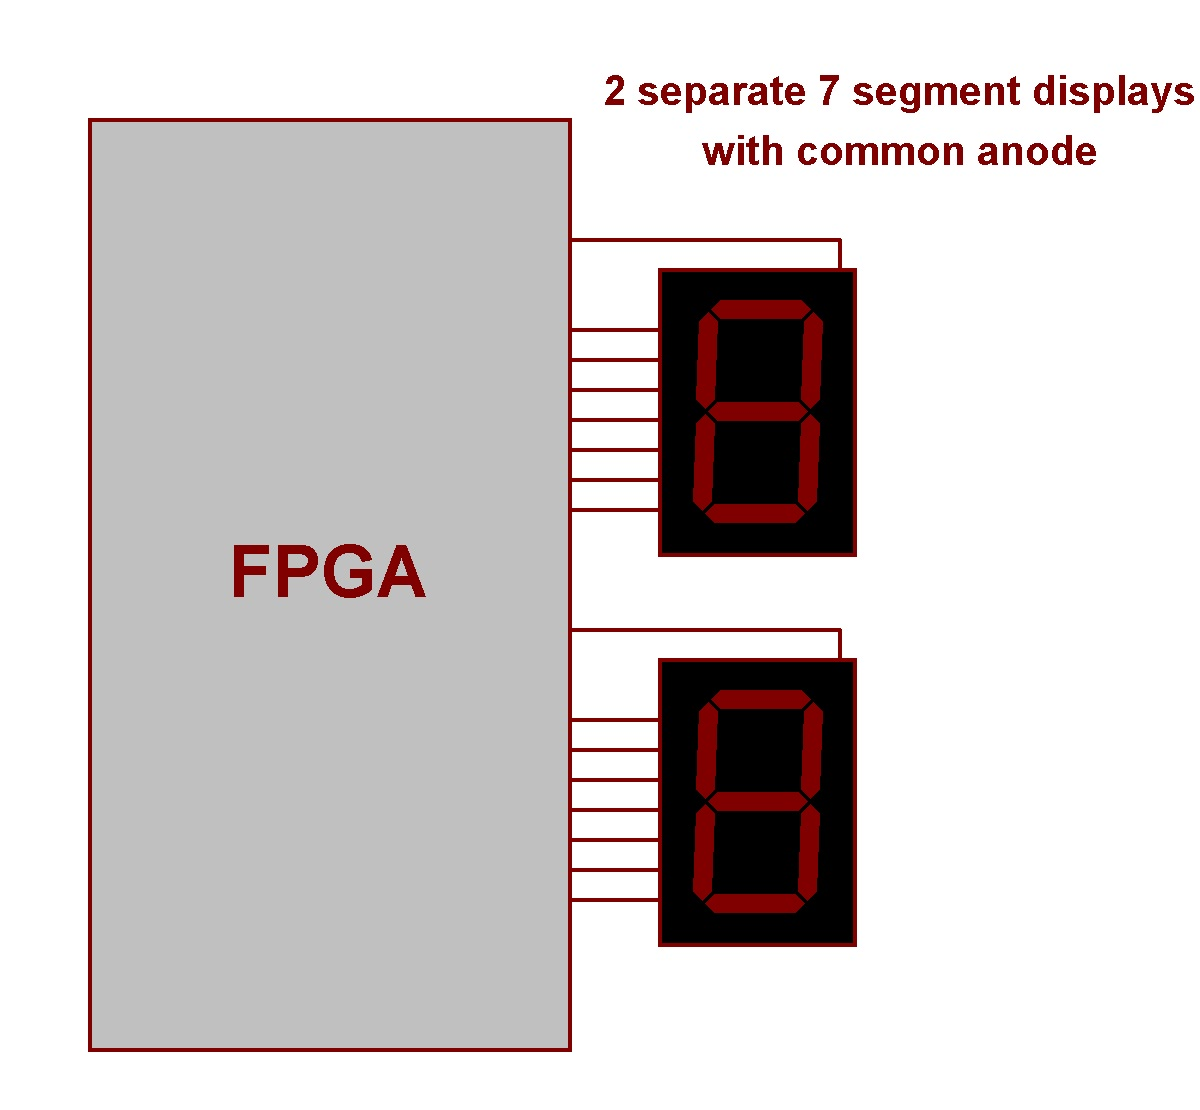 Fpga Tutorials 7 Segment Displays Display Circuit Diagram This Type Of Connection Is Rare But If You Have A Board With Connected Like Will Easier Job Using Them In Your Projects